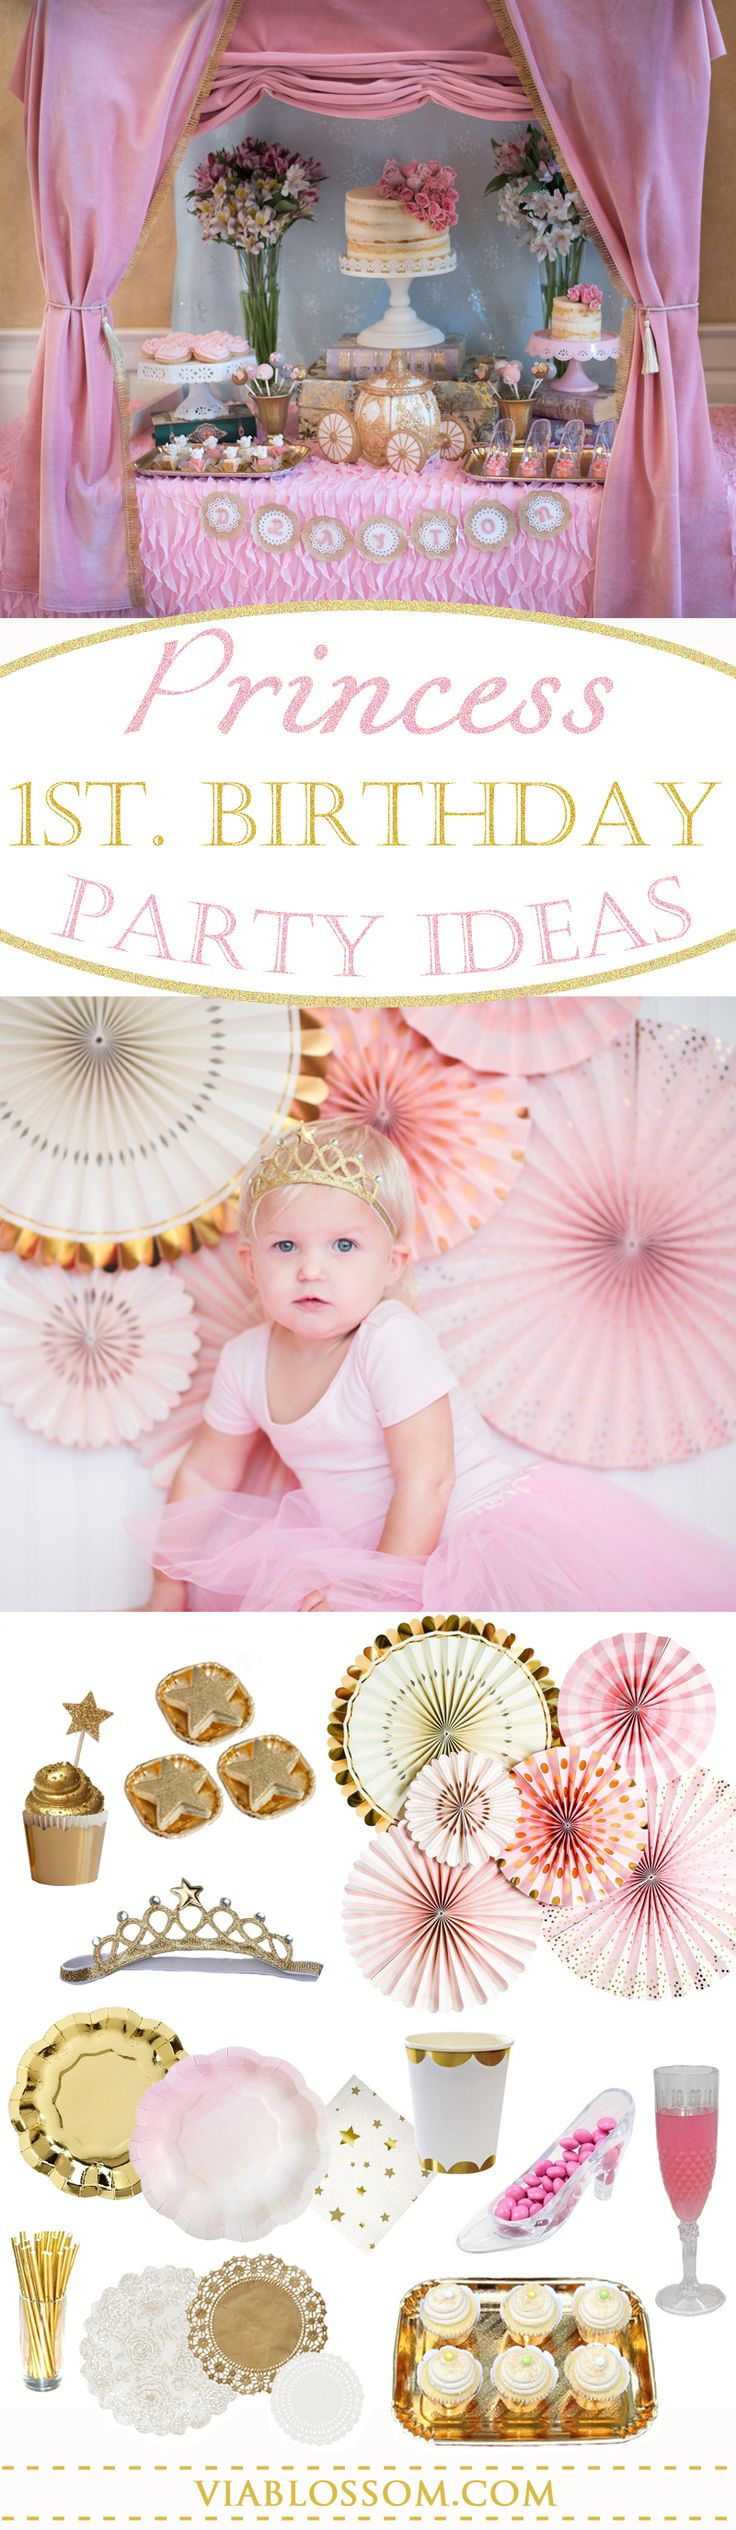 first birthday invitation template india%0A  st Birthday Party ideas for a Princess Birthday Party  All the Gold and  Pink Party